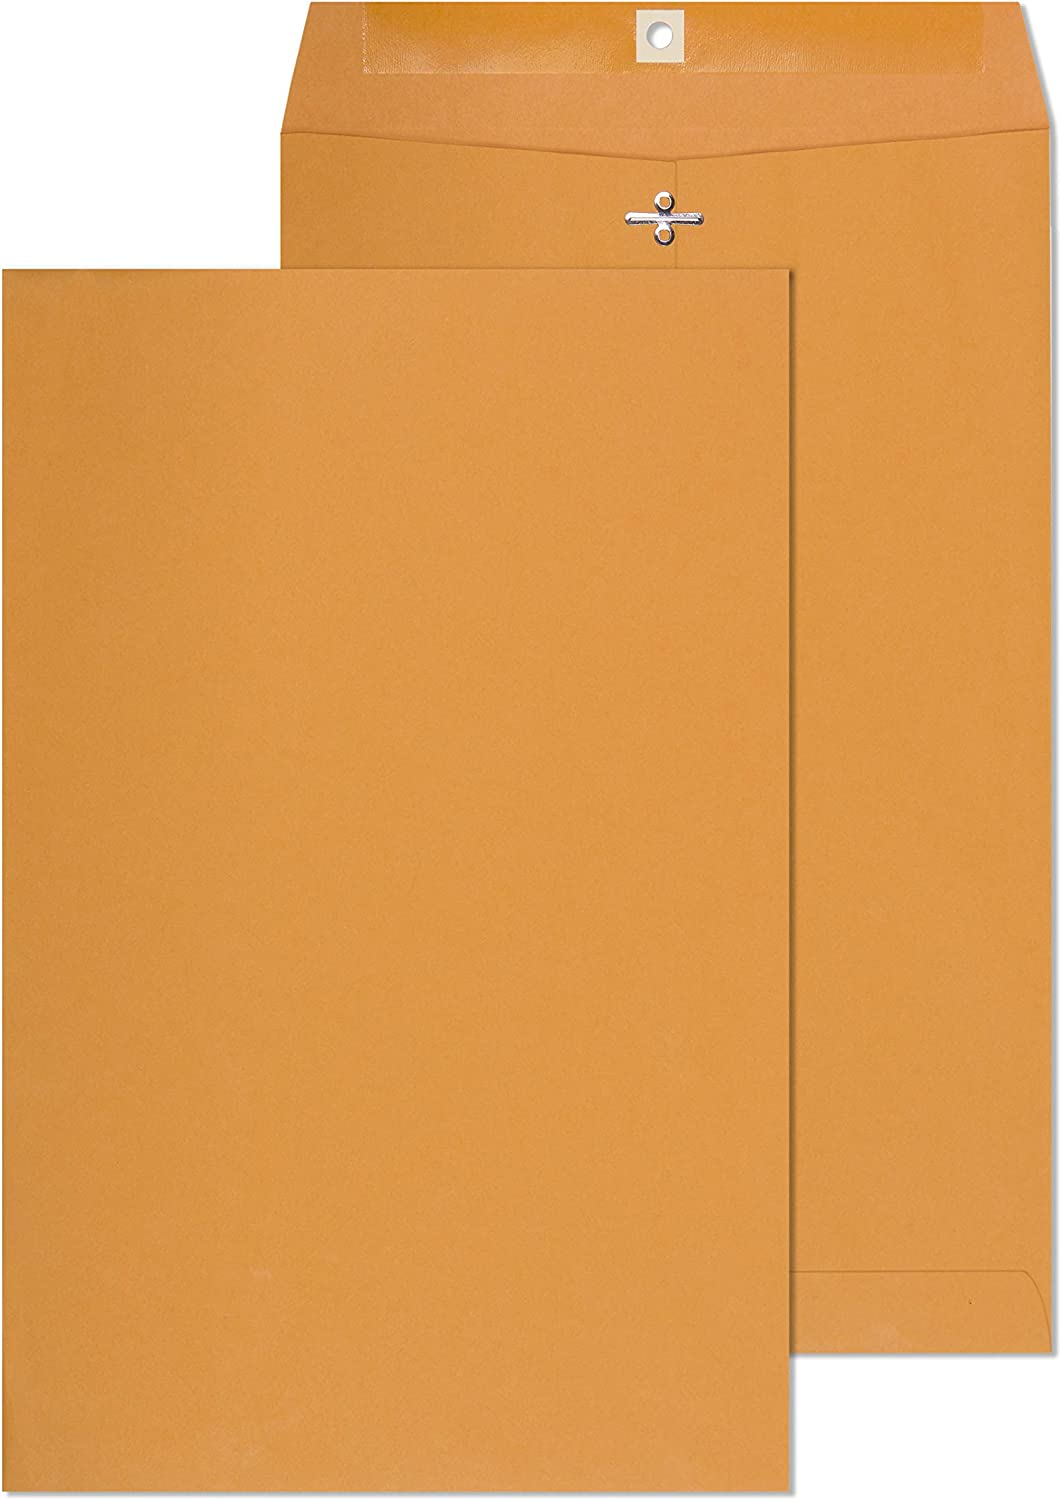 EnDoc 10 x 15 Clasp Envelopes - Brown Kraft Catalog Mailing Gummed Seal Envelope - 28lb Heavyweight 10x15 Inches Manila Envelopes for Home, Office, Business, Legal or School - 100 Pack